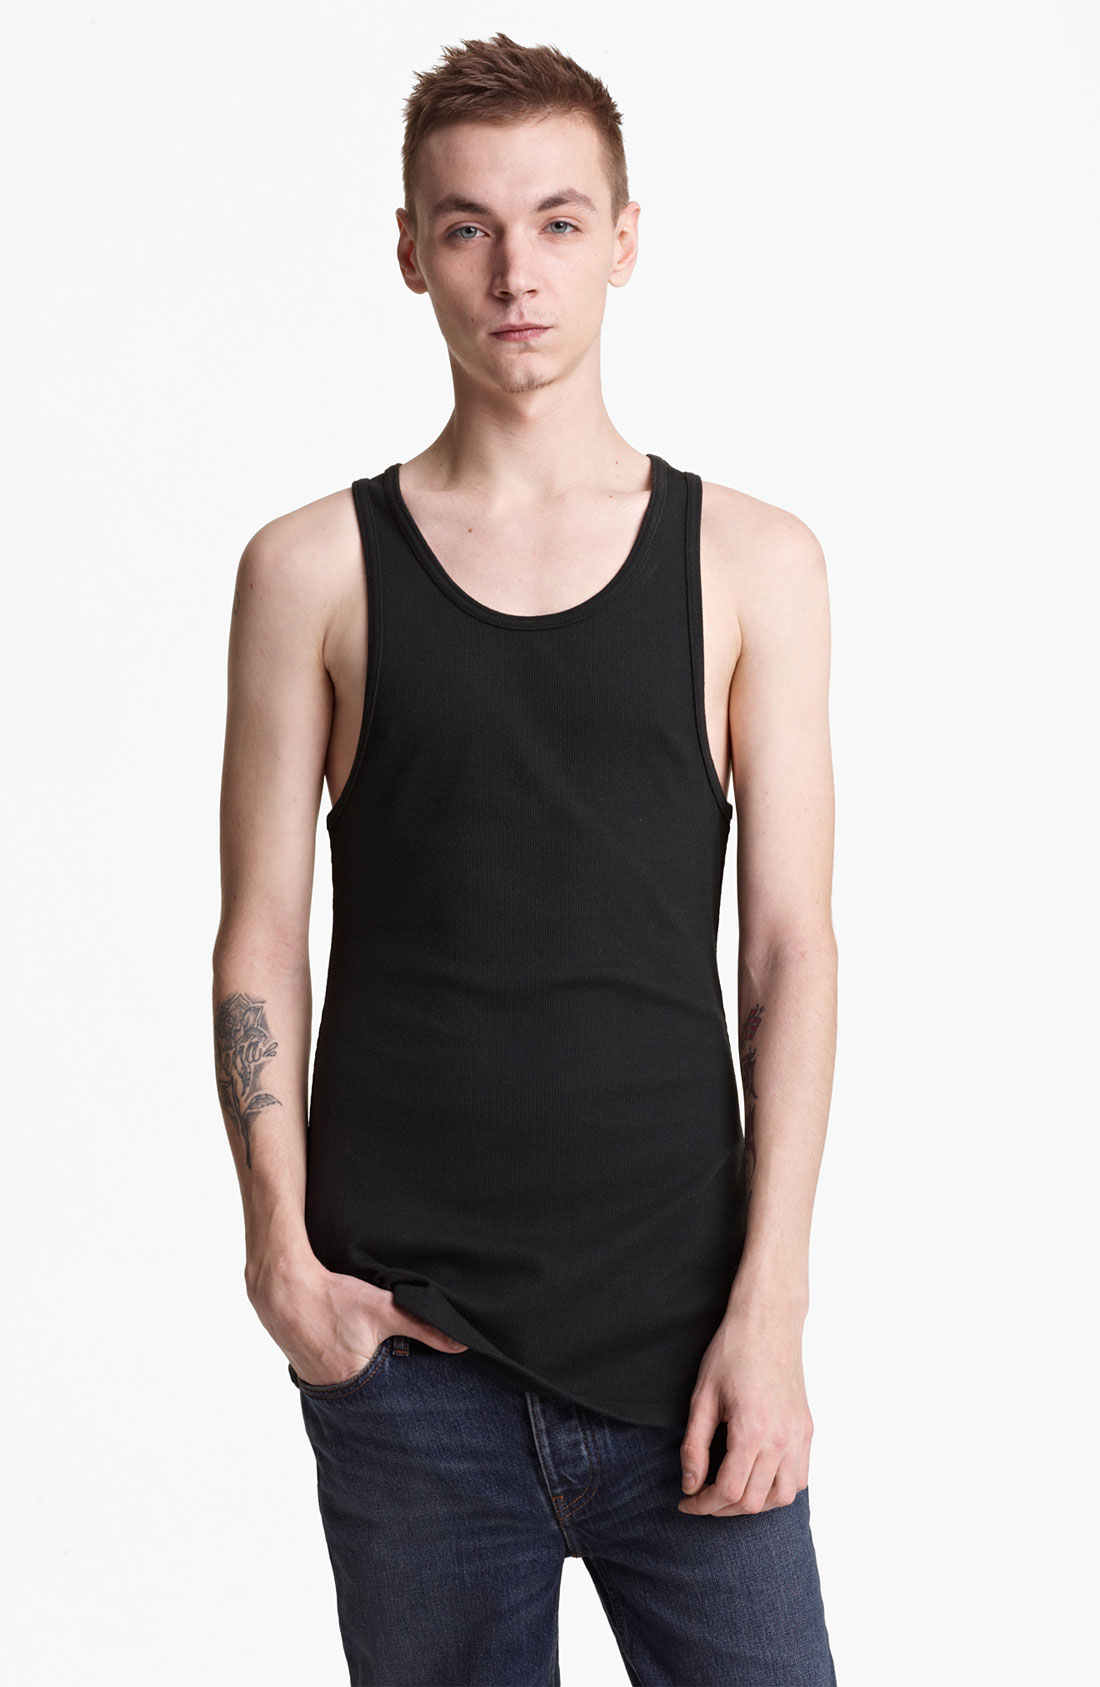 Find great deals on eBay for mens tank tops non ribbed. Shop with confidence.